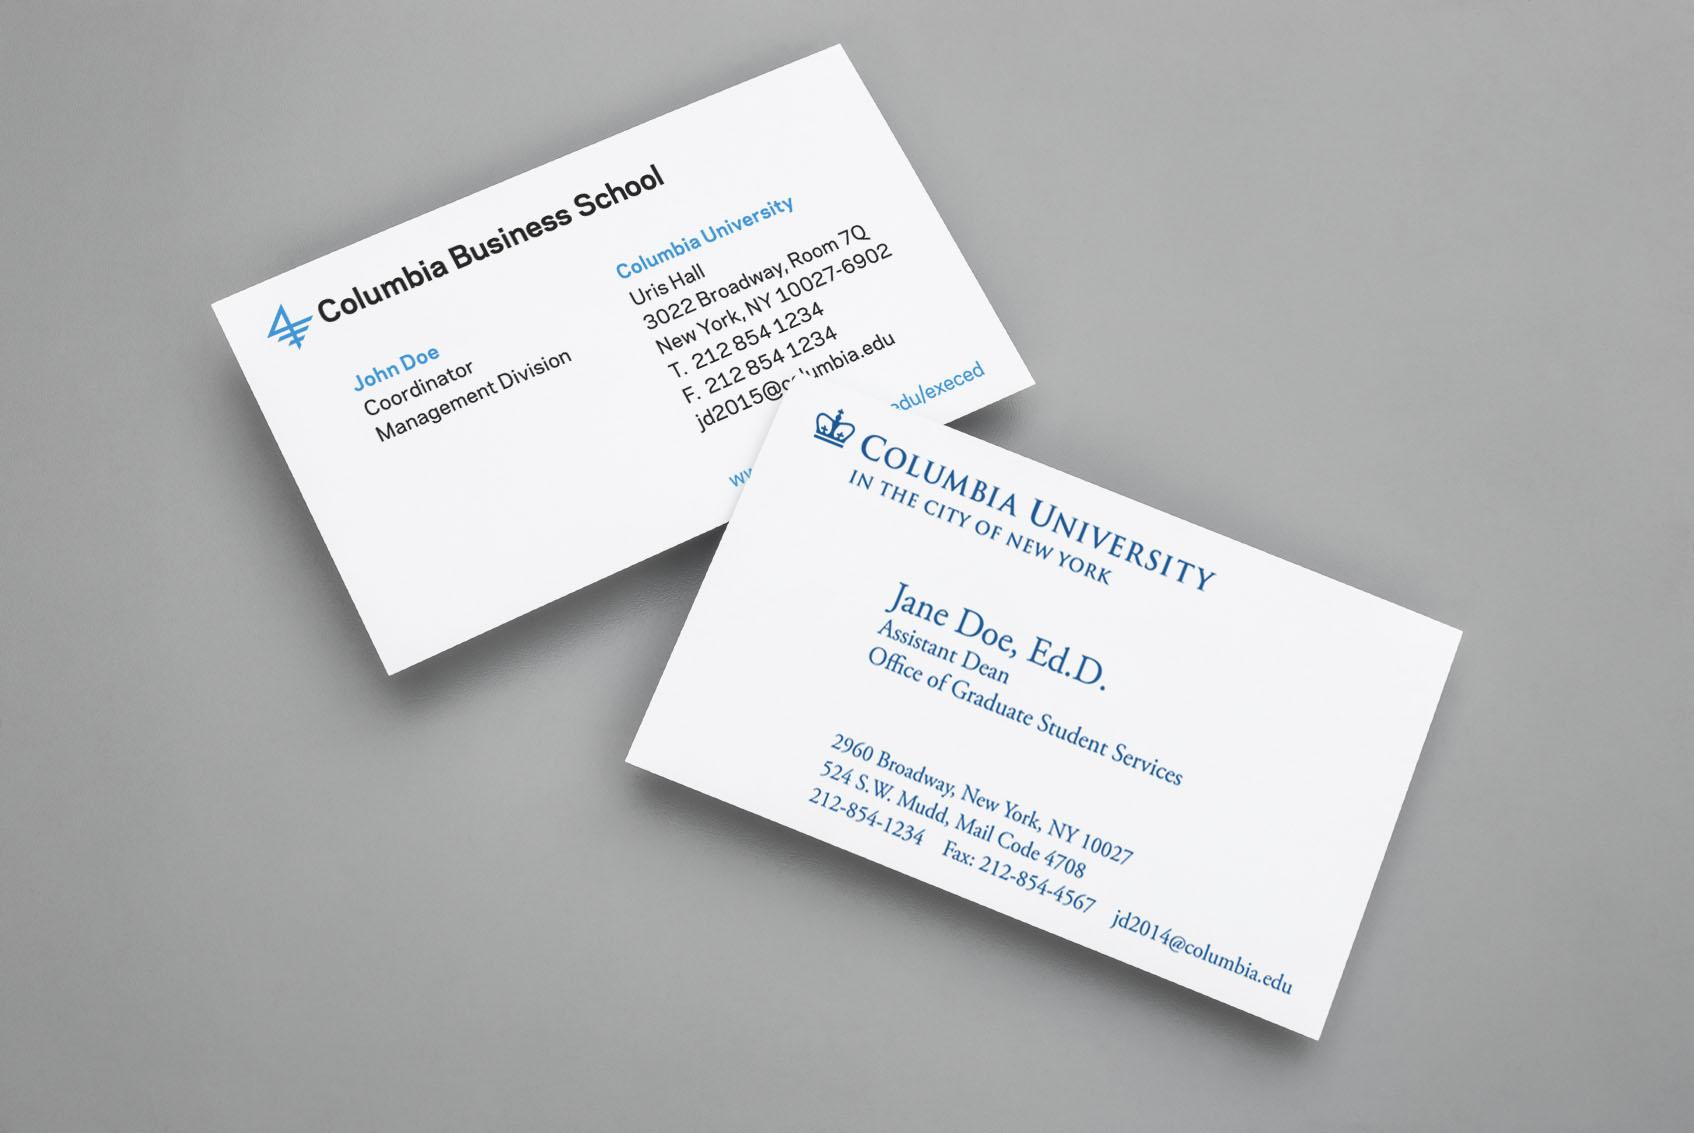 business card samples - Business Card